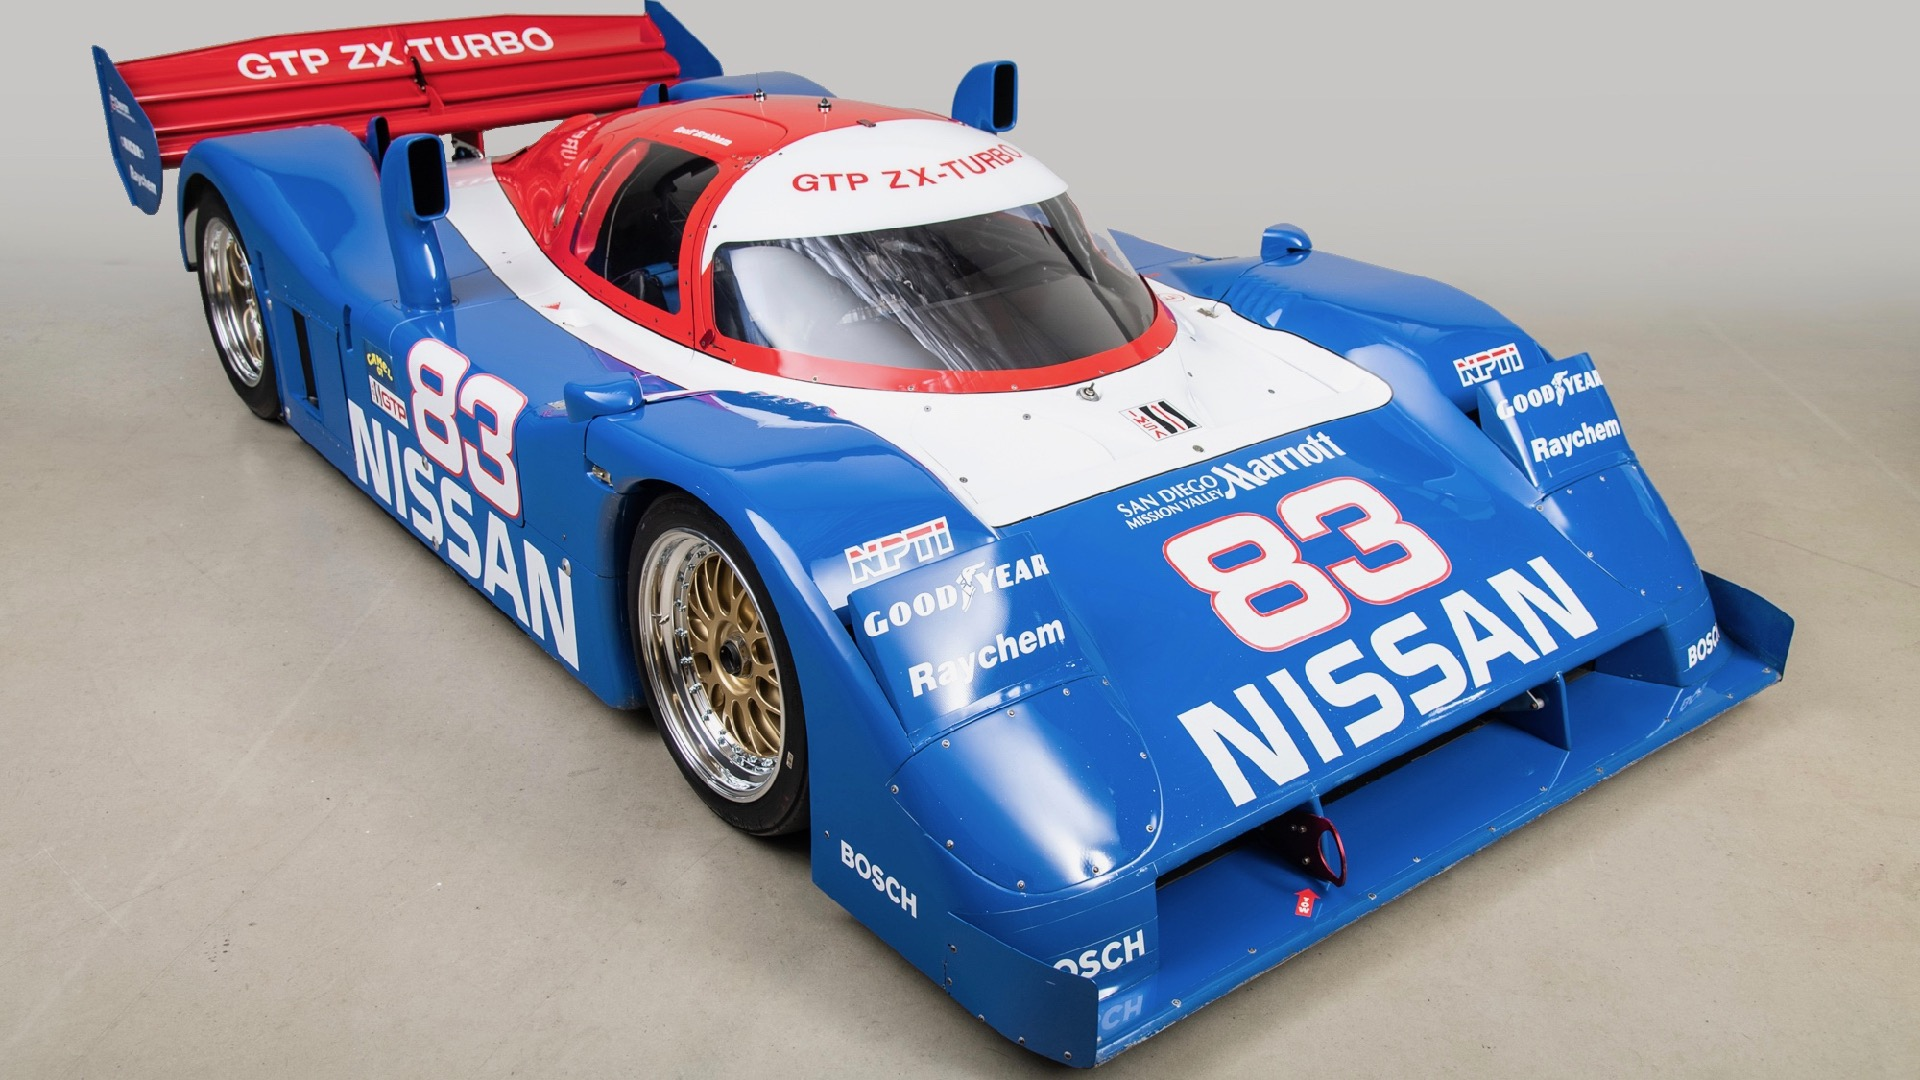 1990-nissan-npt-90-photo-by-canepa_100742131_h